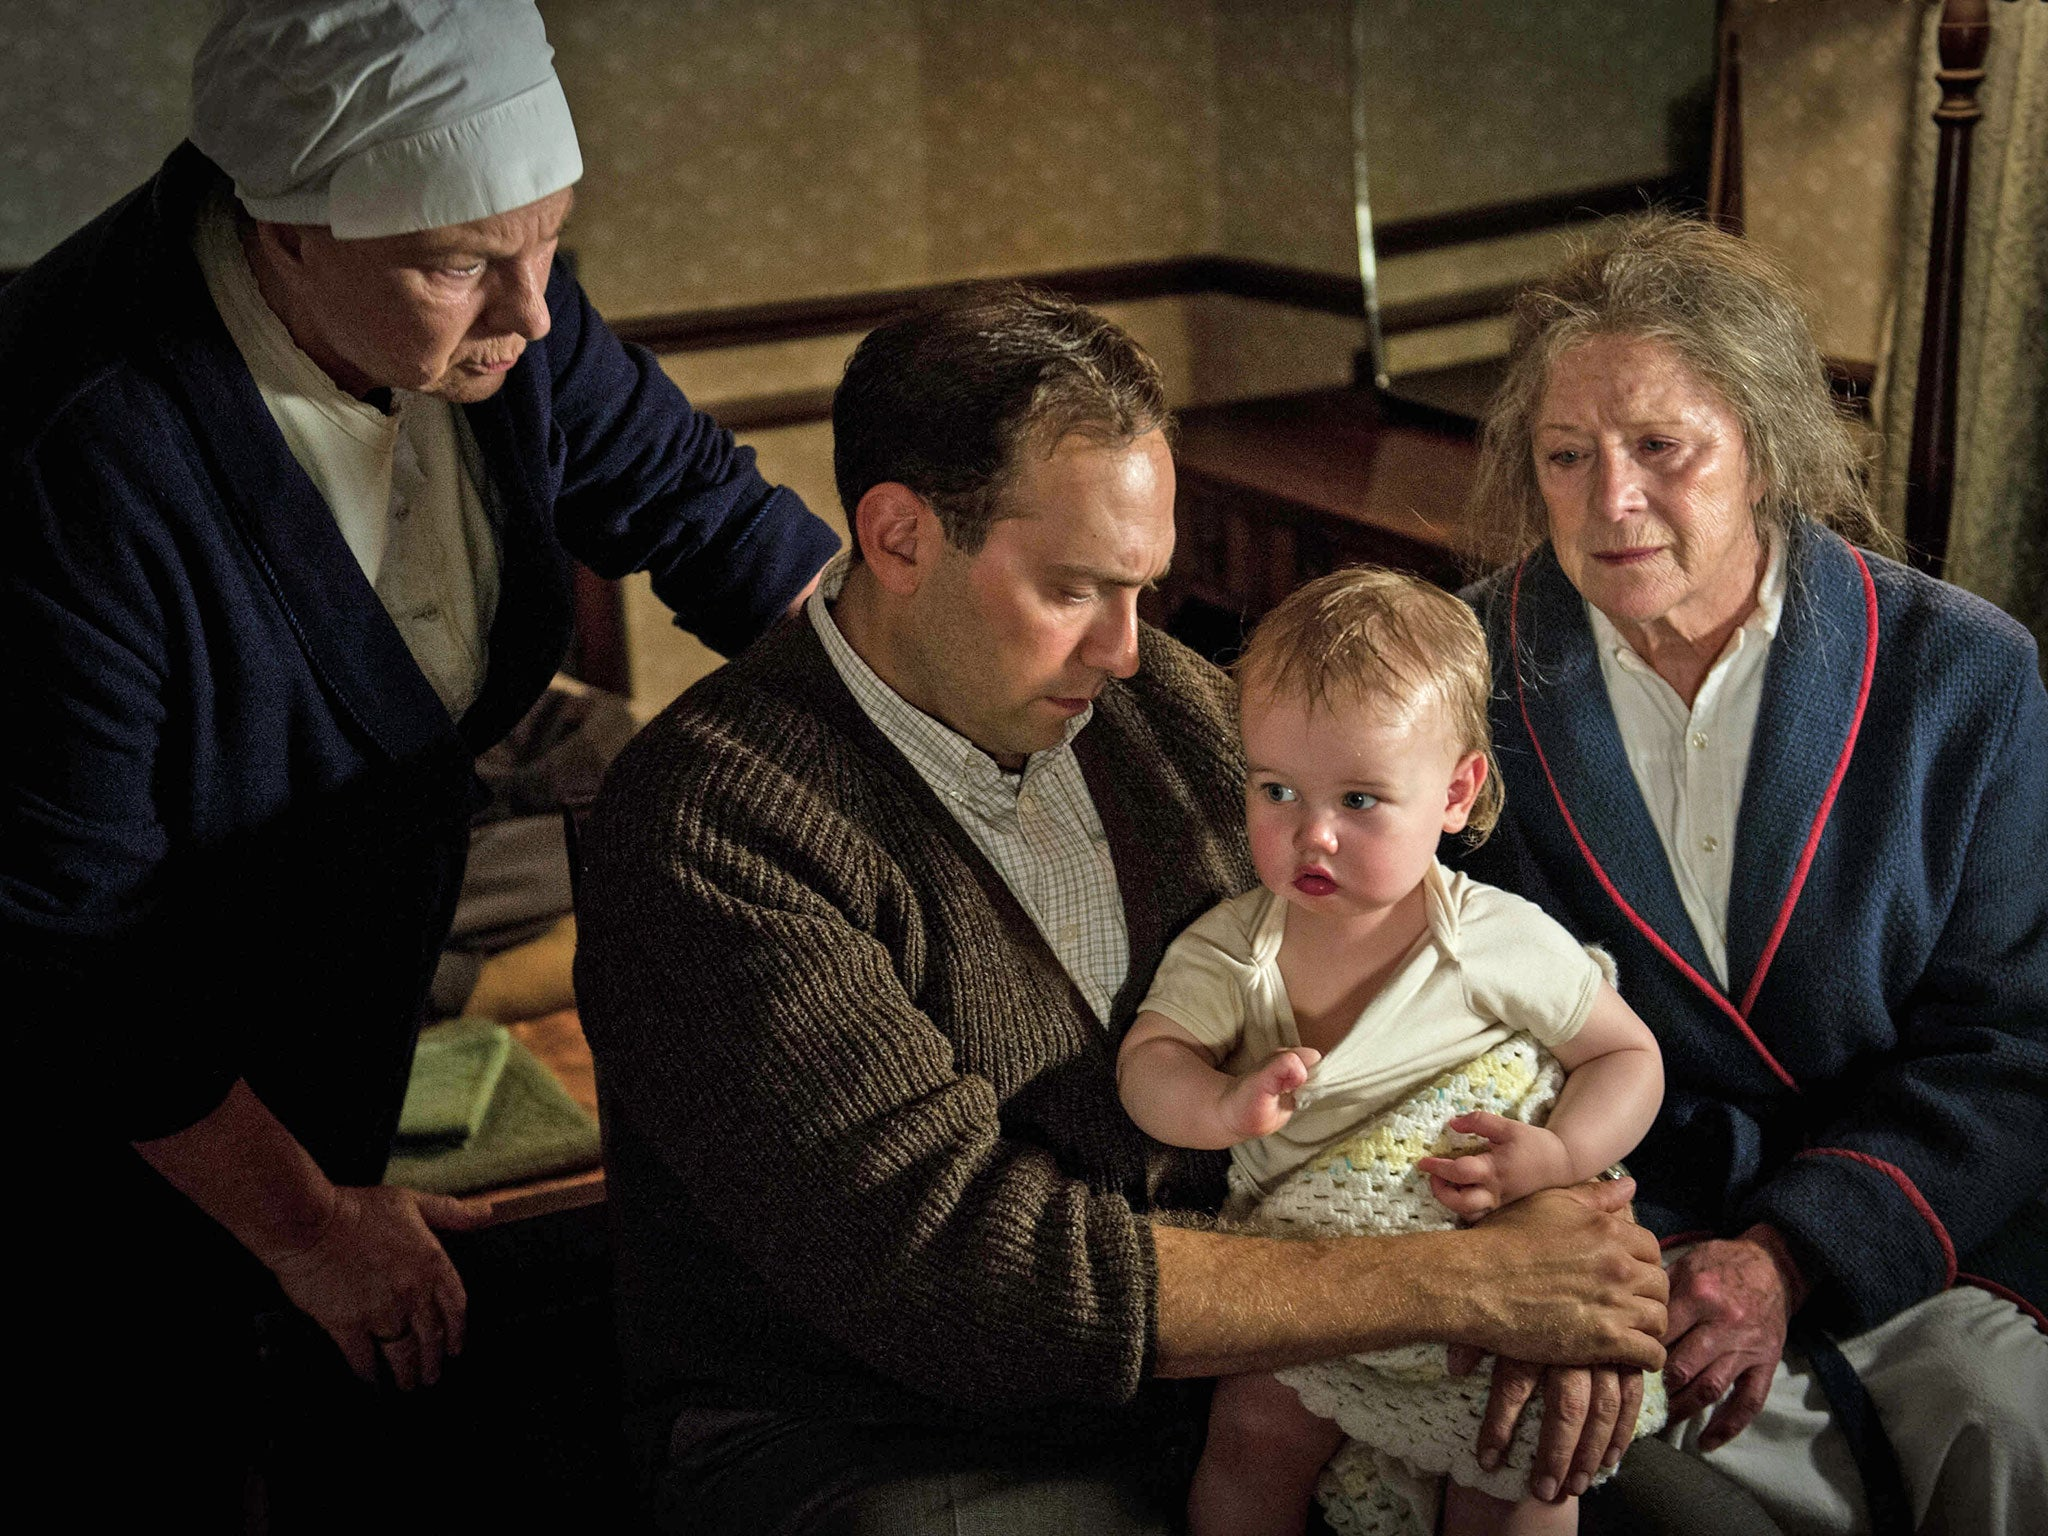 Call The Midwife Christmas Special.Call The Midwife Christmas Special Review Miranda Hart And